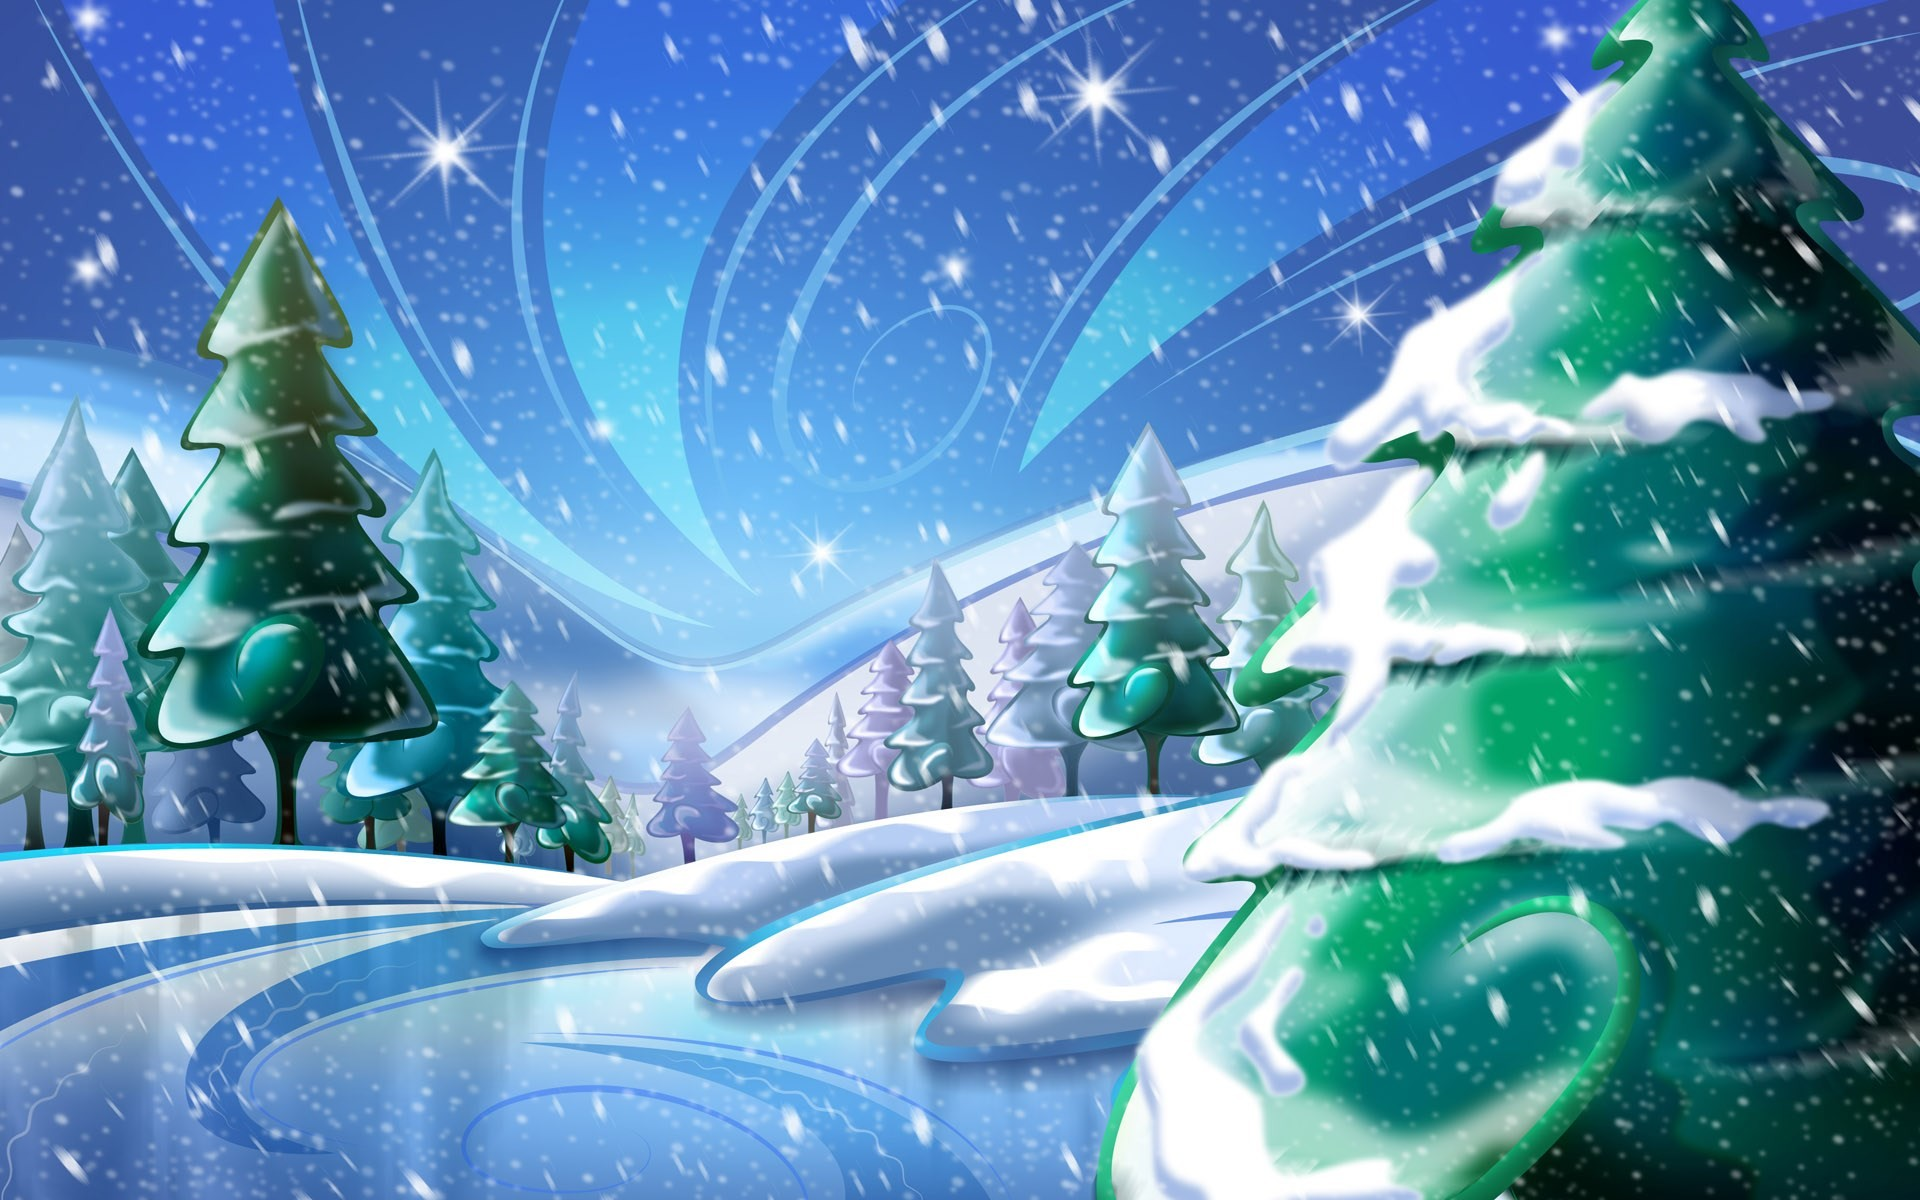 1920x1200 2017-03-03 - winter theme background images, #1639332